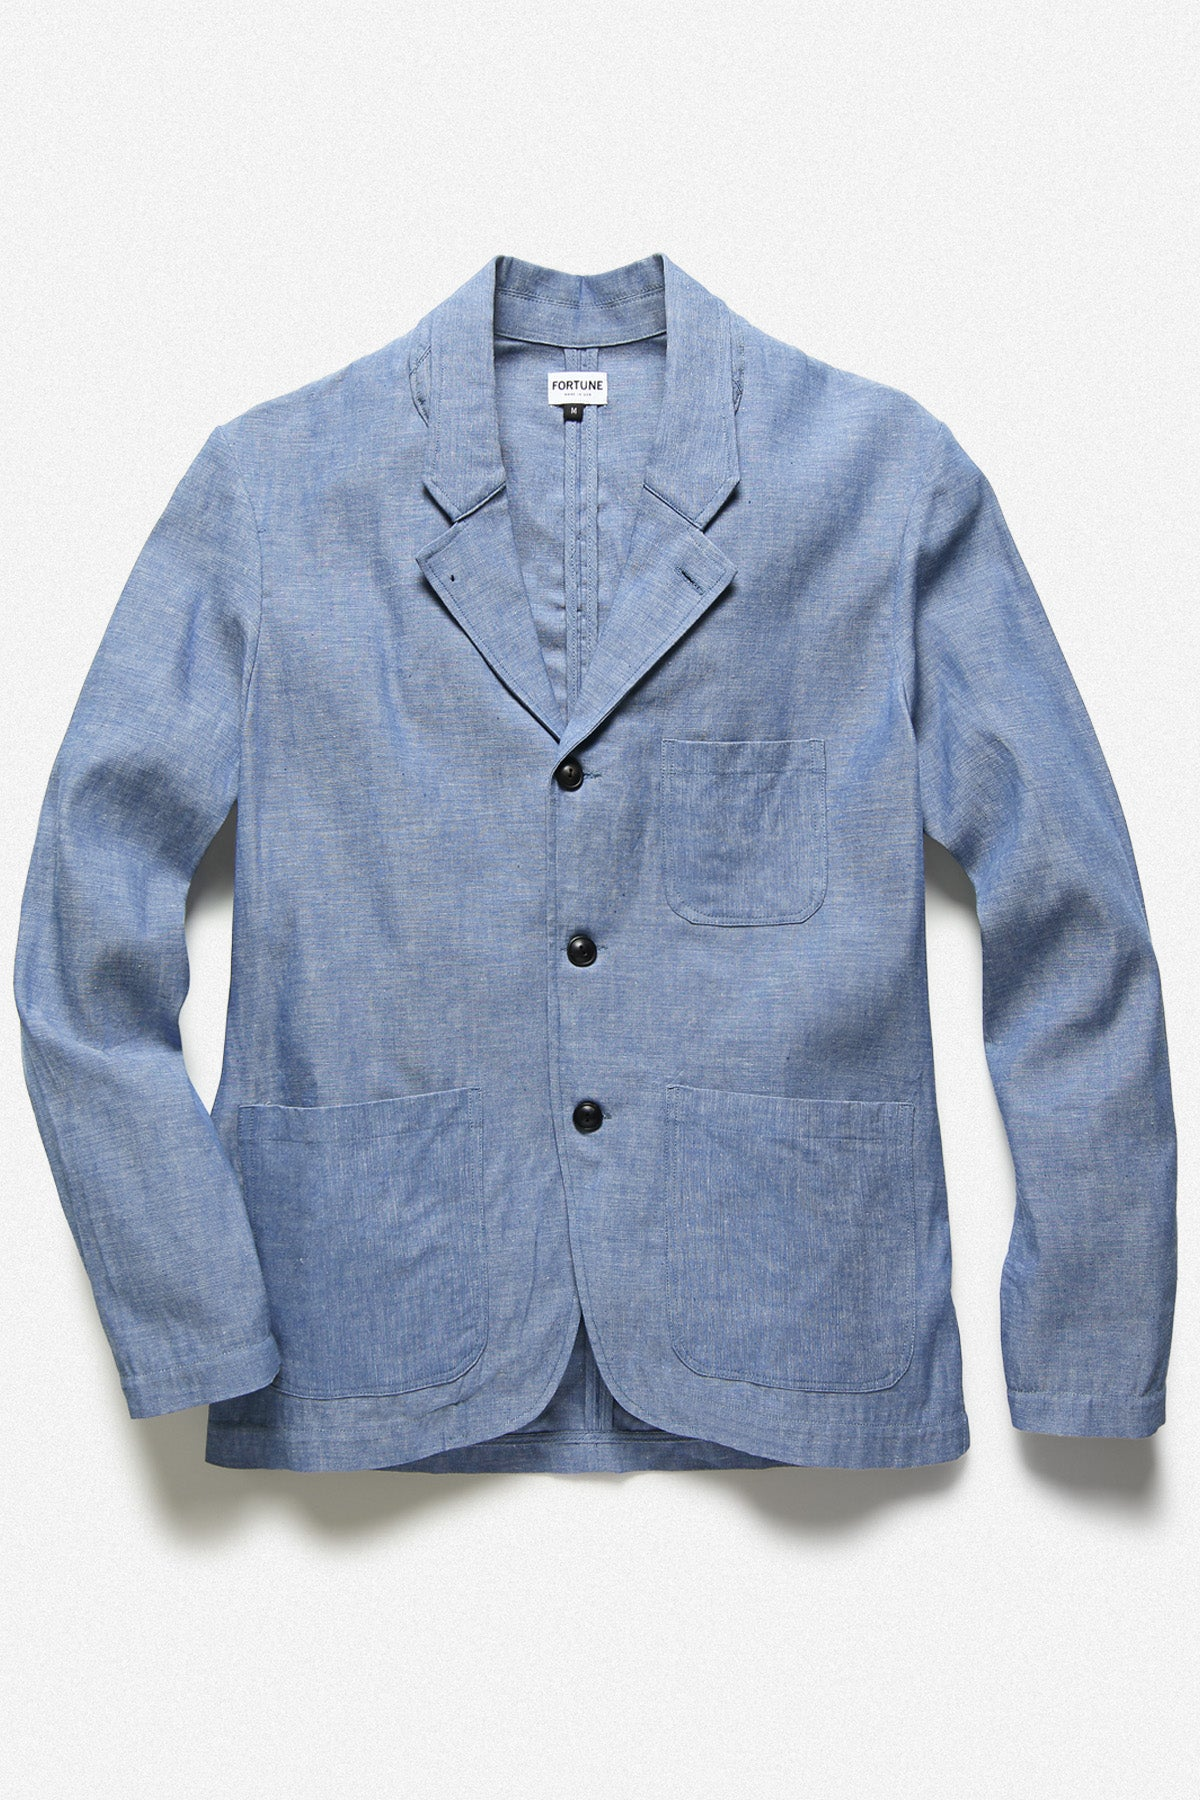 RUM JACKET IN BLUE SELVEDGE CHAMBRAY - Fortune Goods